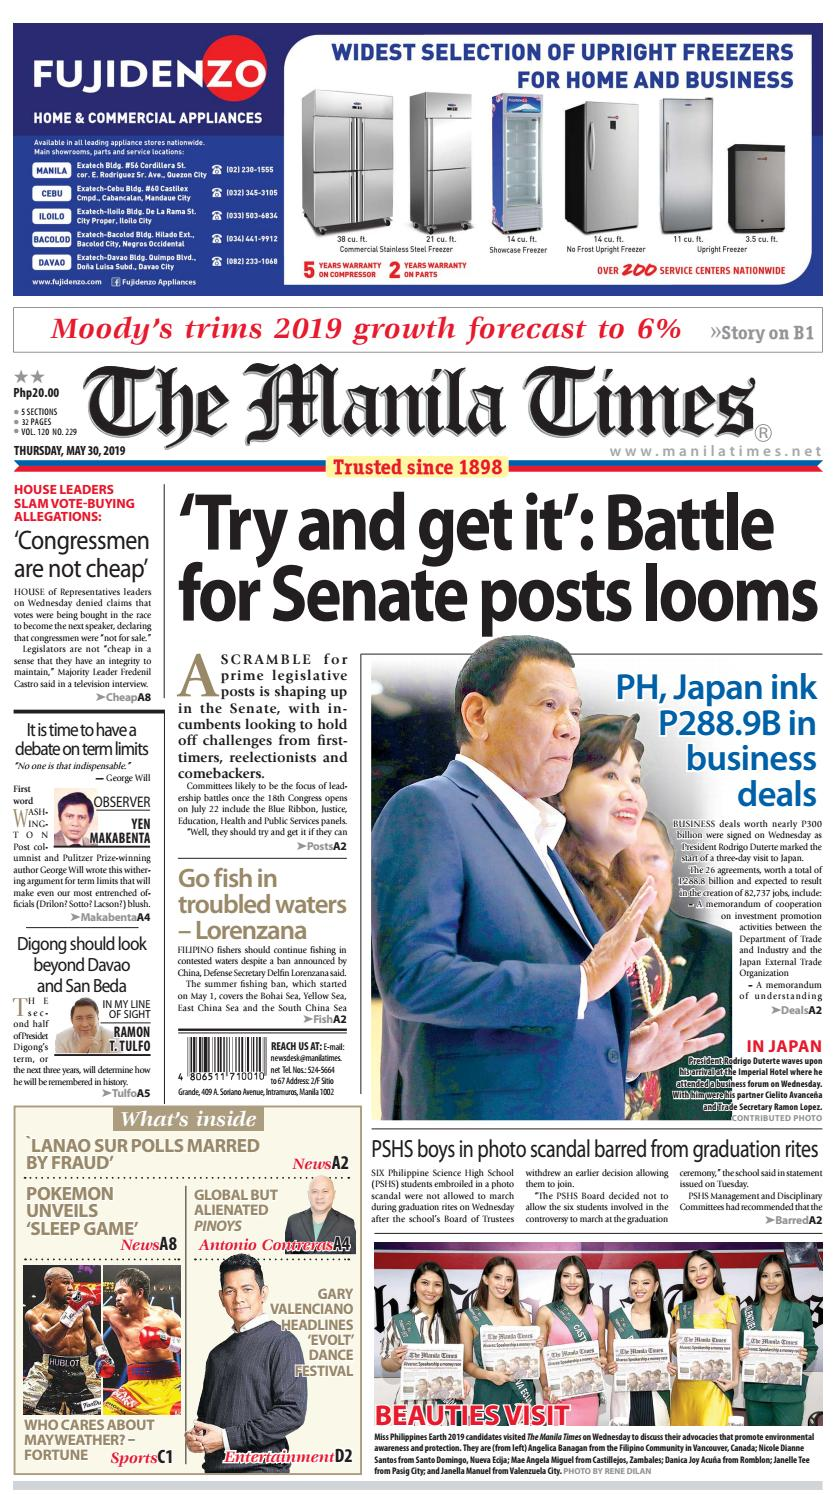 THE MANILA TIMES | MAY 30, 2019 by The Manila Times - issuu